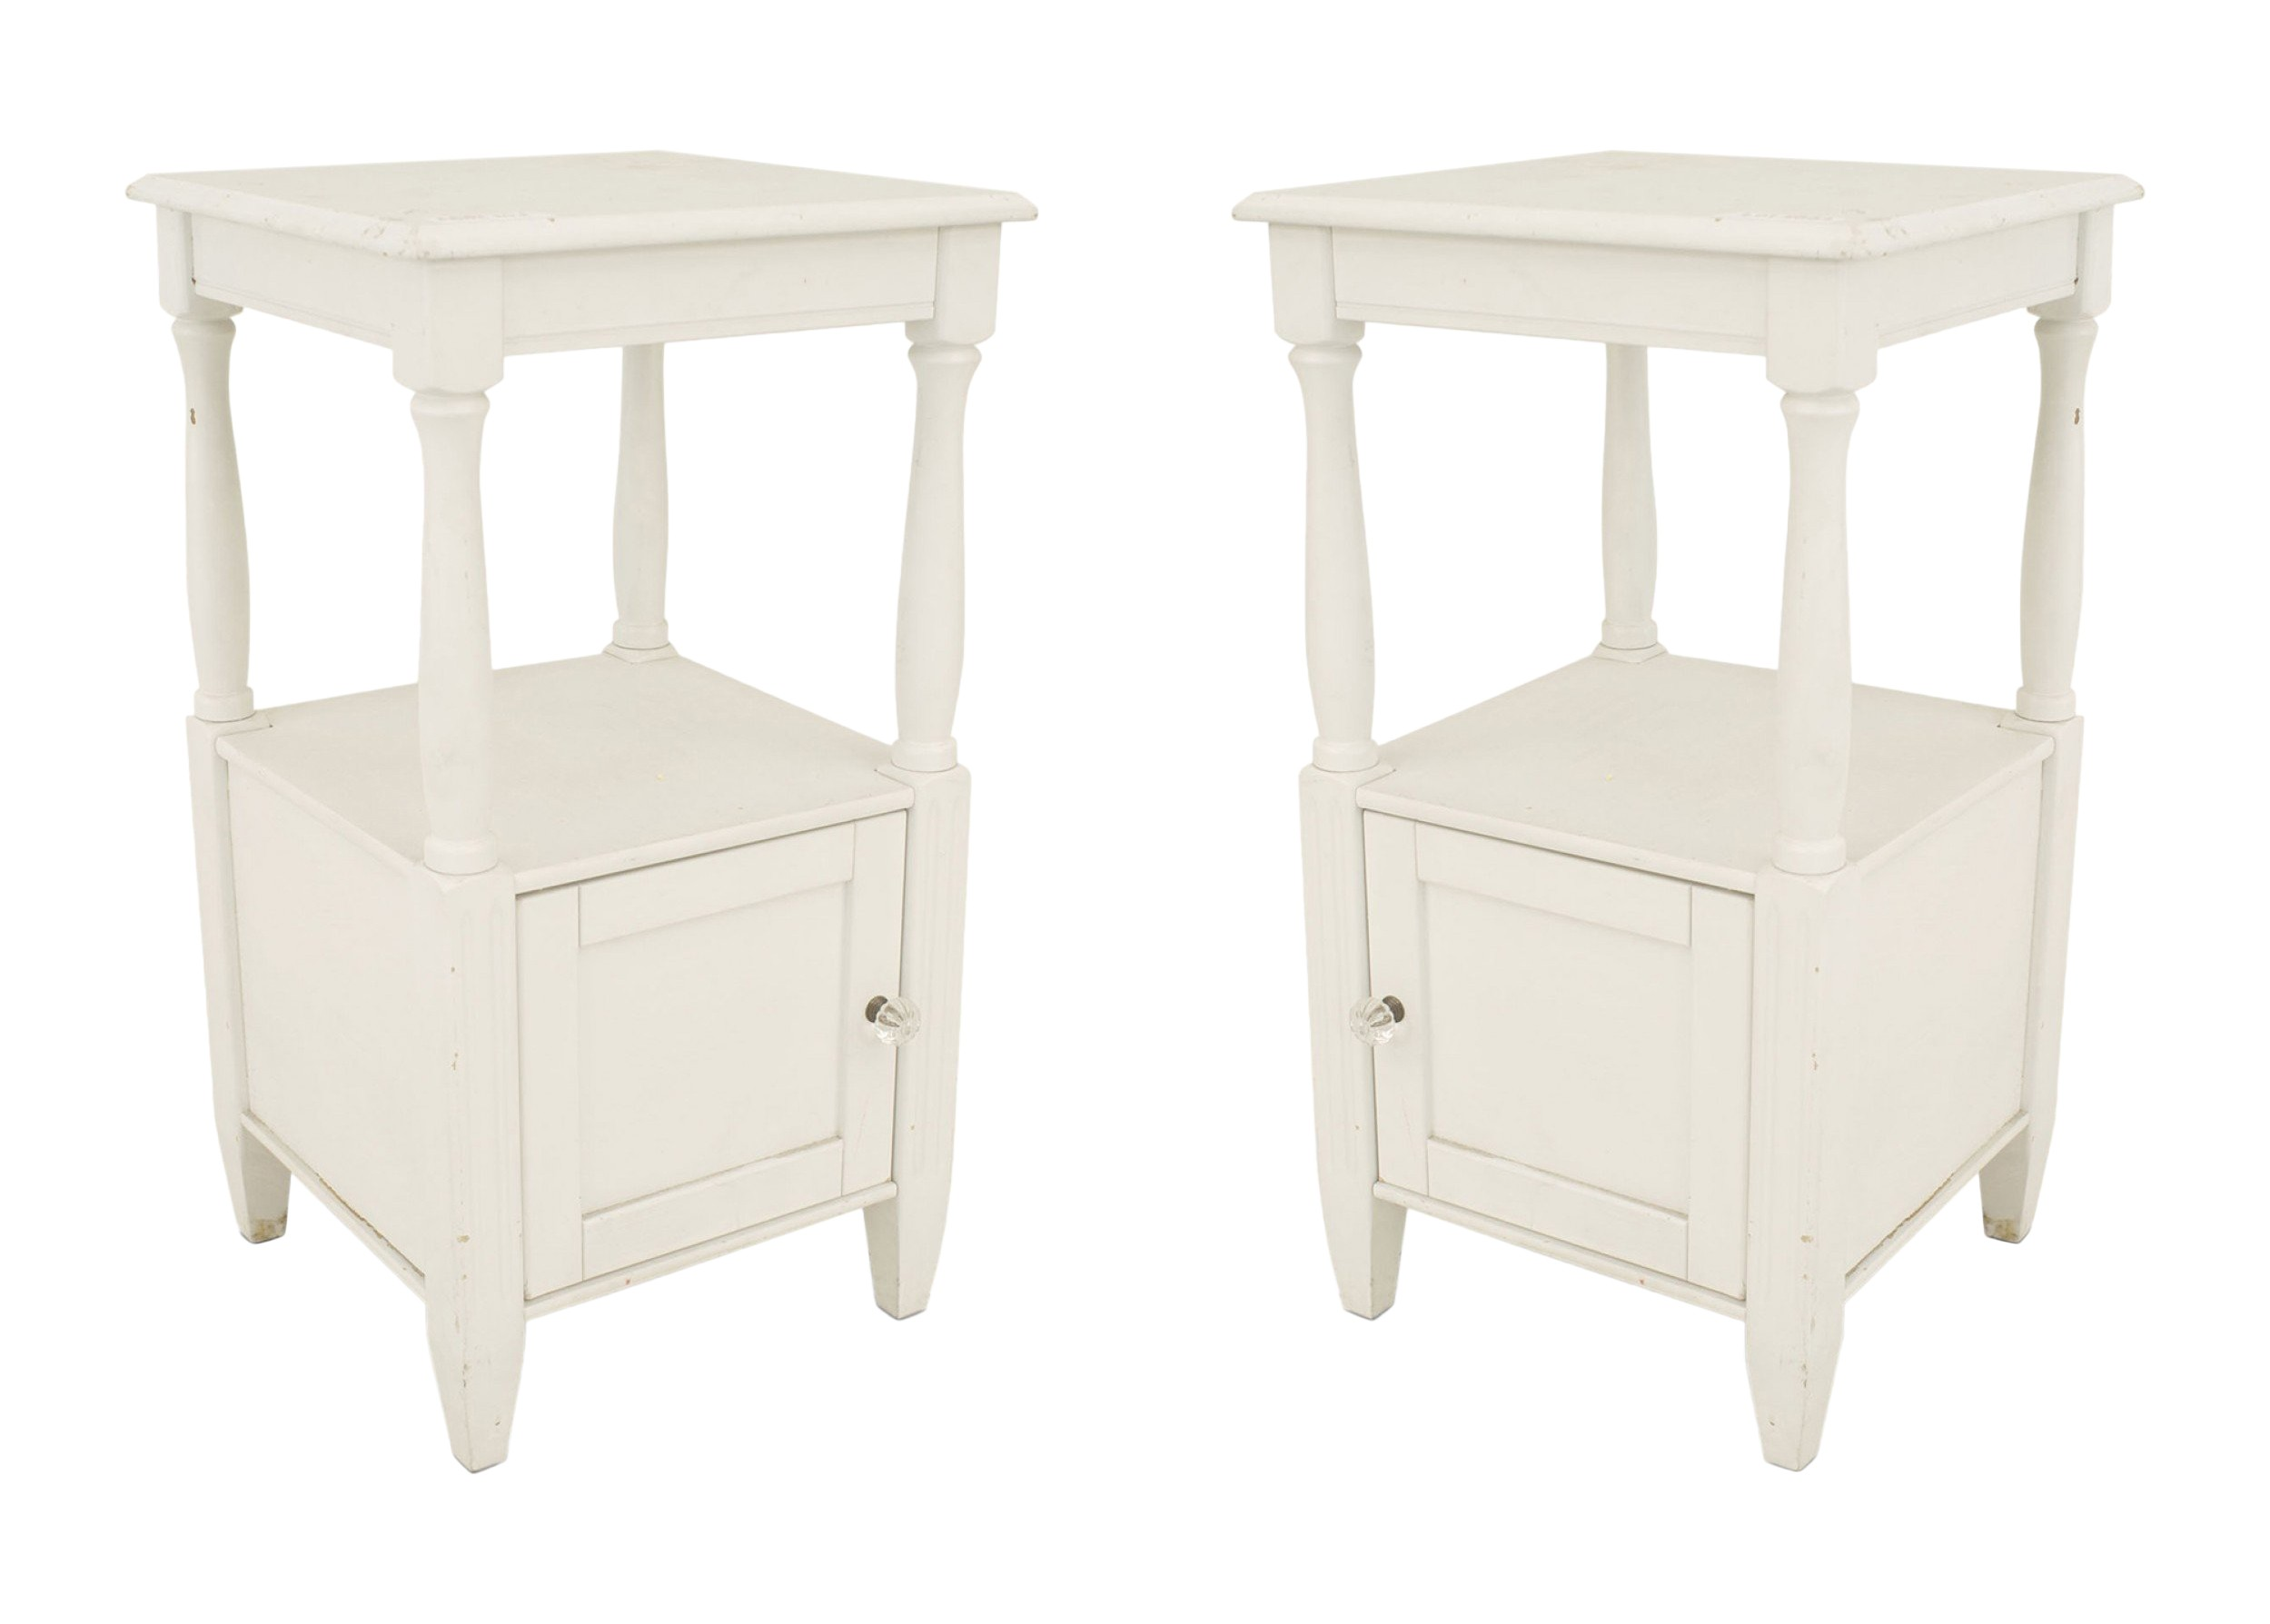 French Provincial Painted Bedside Tables 1